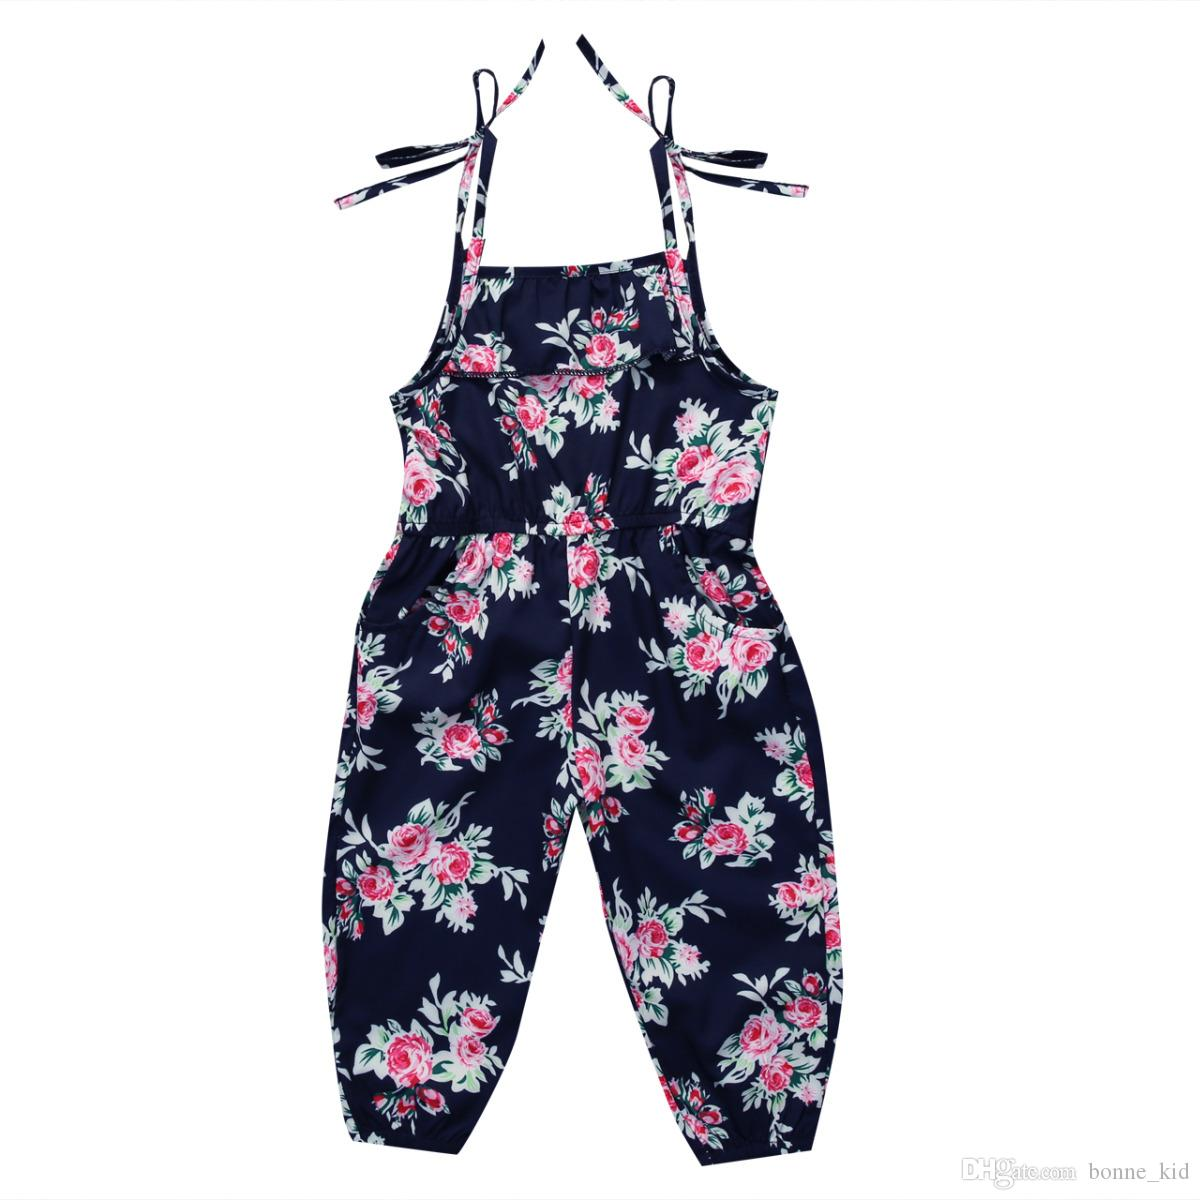 77a4ca8043aa Newborn Baby Girl Flower Print Bib Overalls Jumpsuit Outfit Summer Retro  Dungaree Kids Girls Clothing Boutique Clothes Baby Braces Suspenders Red  Suspenders ...